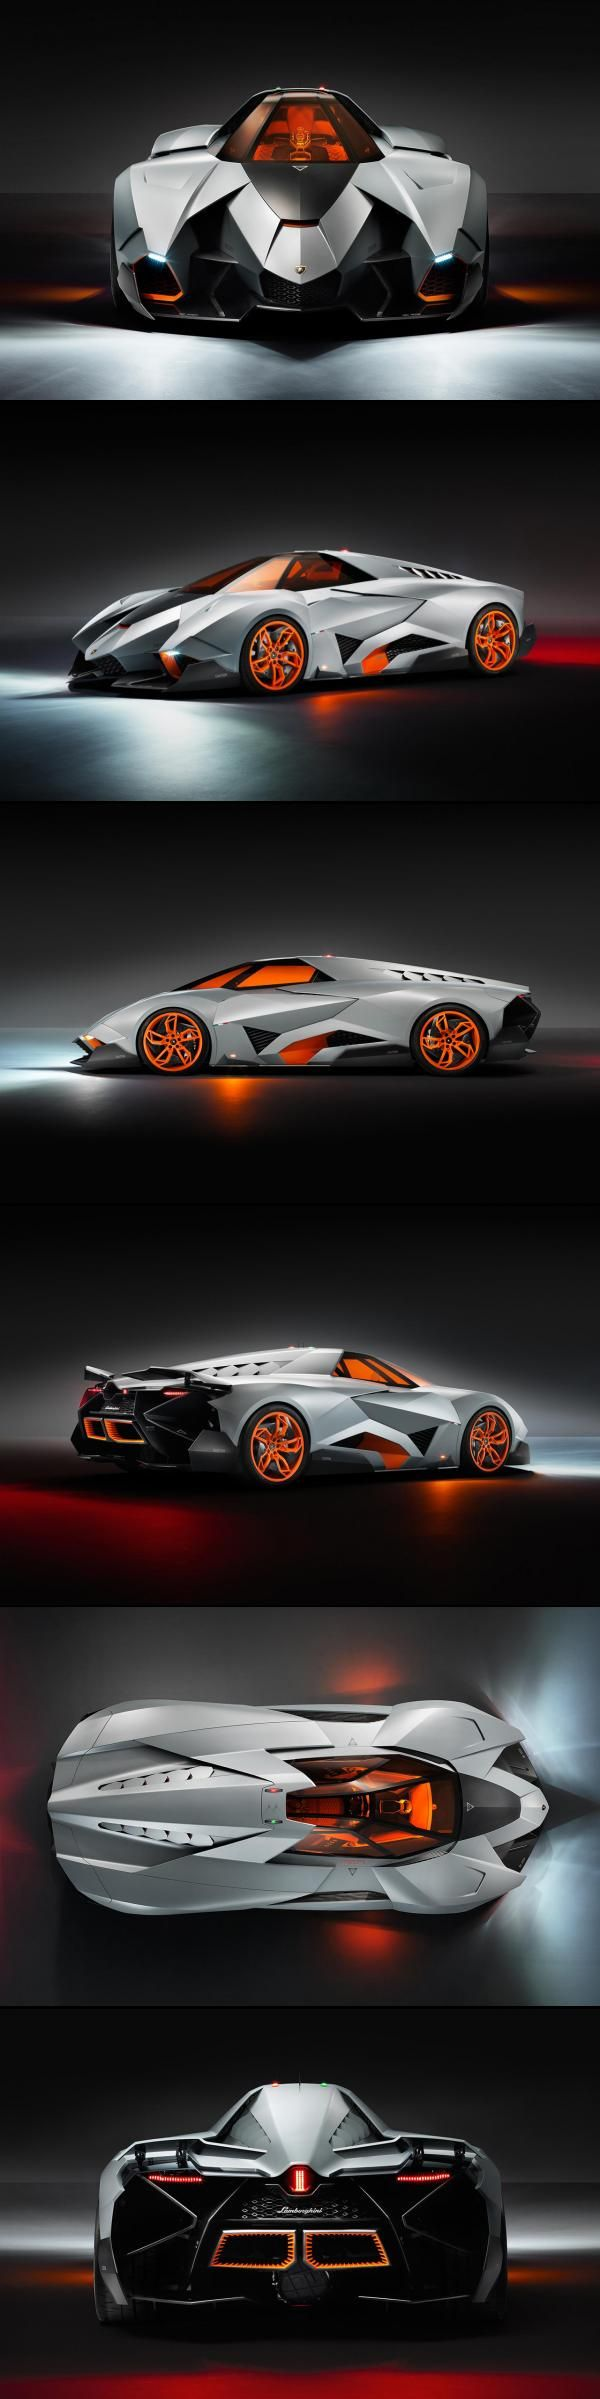 The Lamborghini Egoista aka the spaceship coupe. This looks likes it's about to go warp speed!